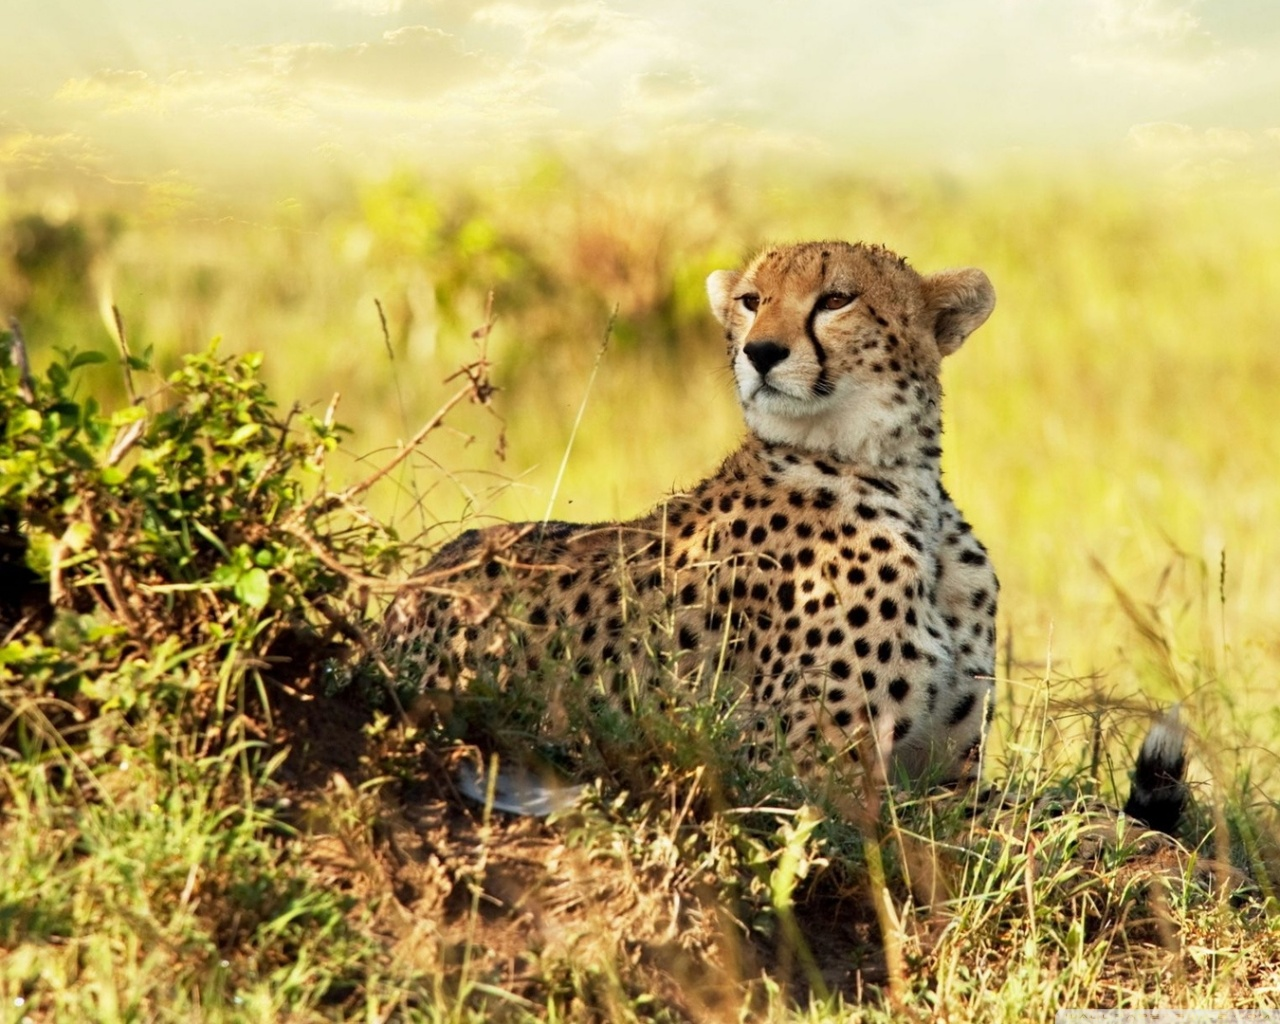 All About Animal Wildlife: Cheetah Cool HD Wallpapers 2012